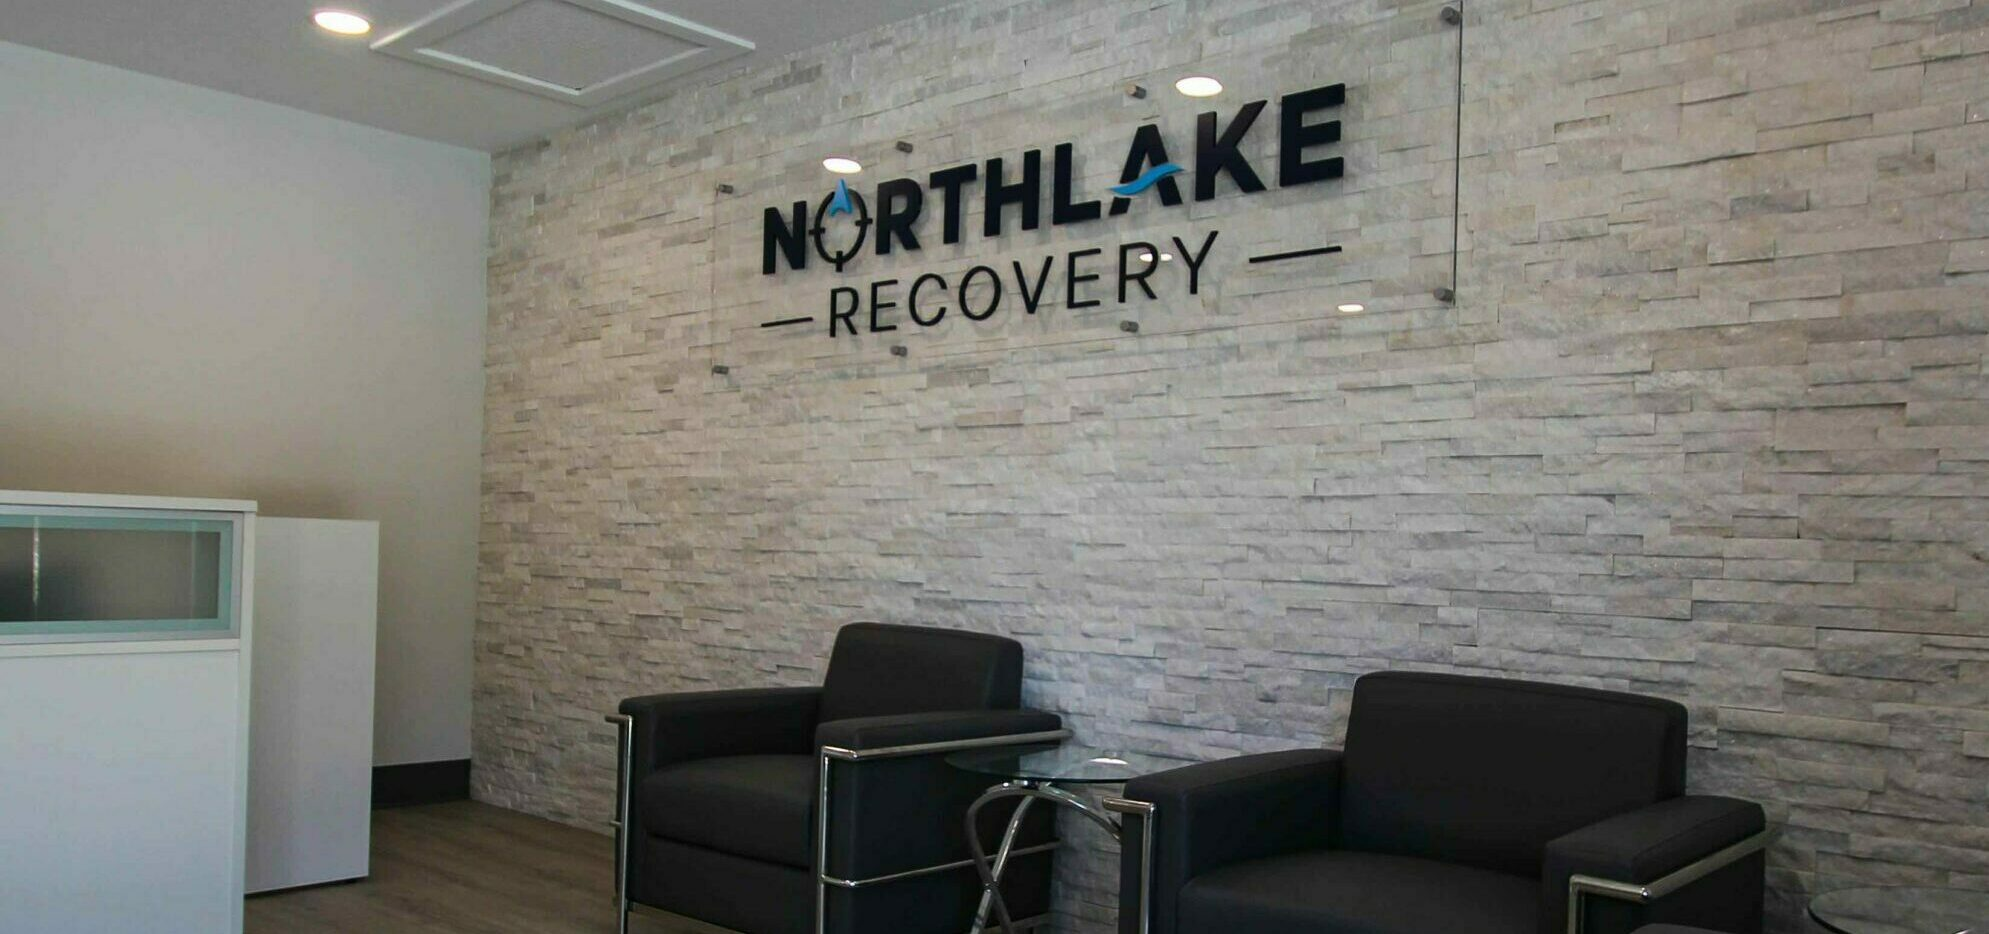 Northlake Recovery